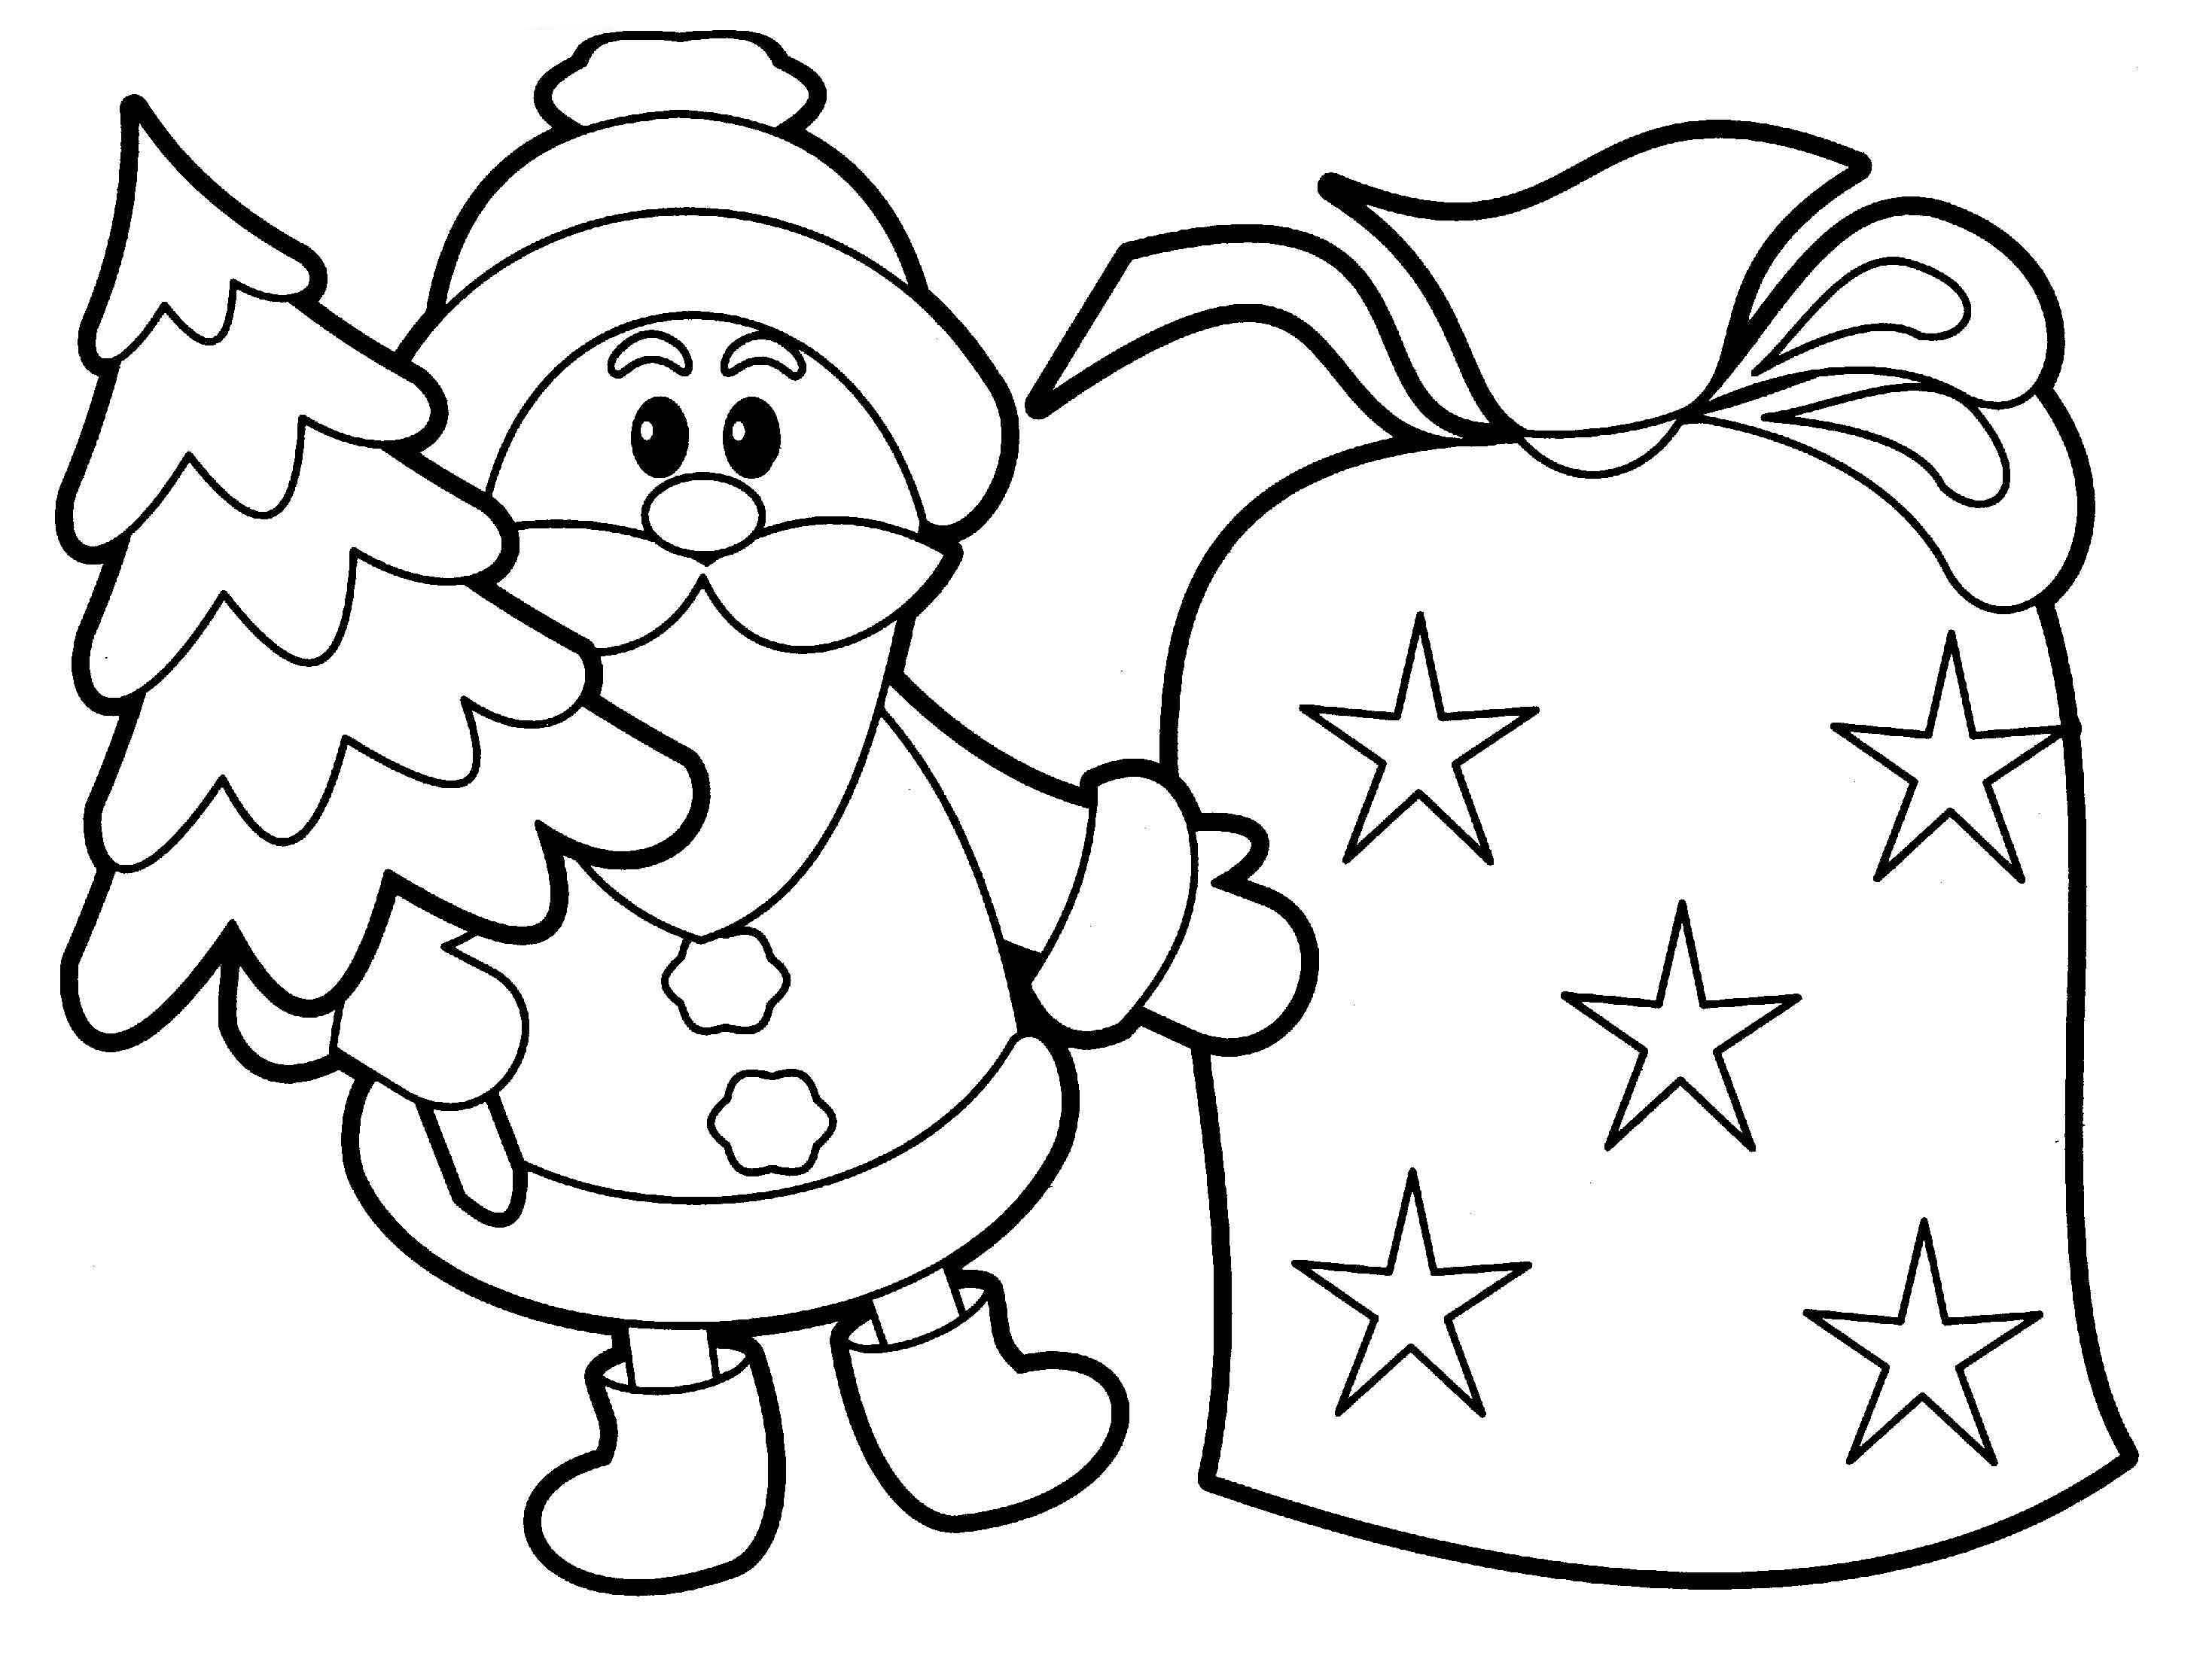 Santa Claus Coloring Pages Image Picture Photo Wallpaper 11